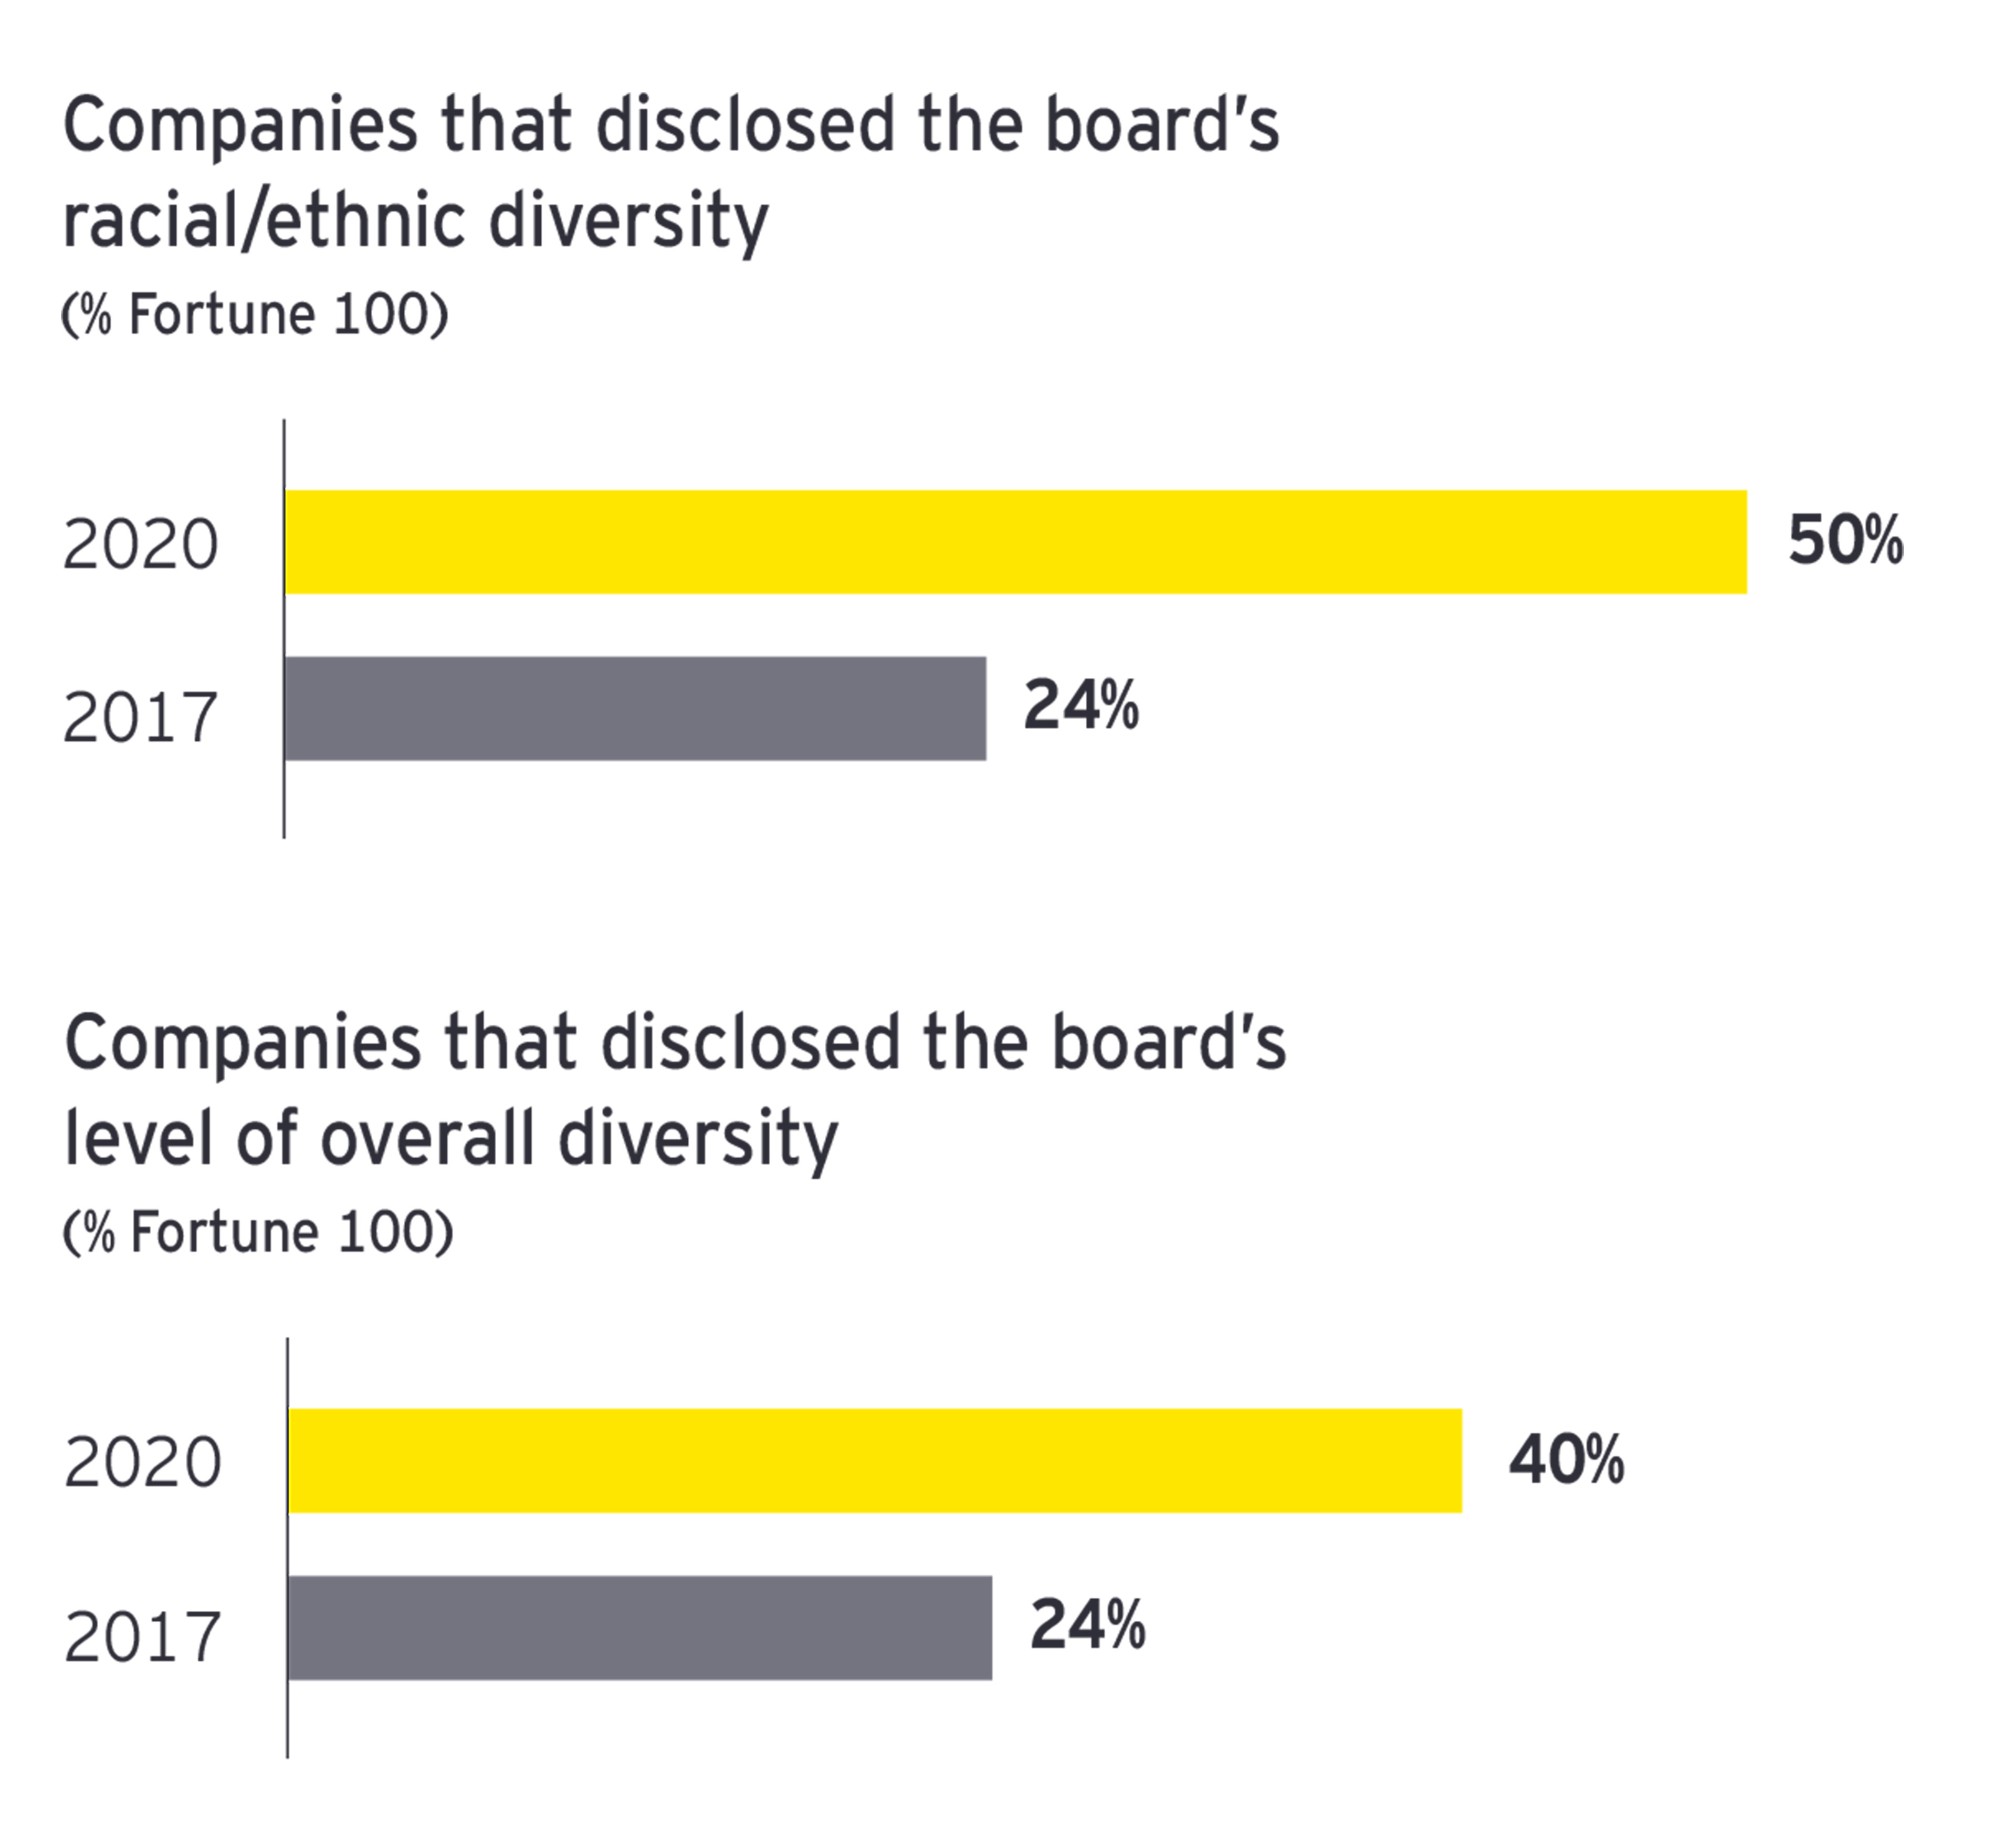 EY - Companies that disclosed diversity